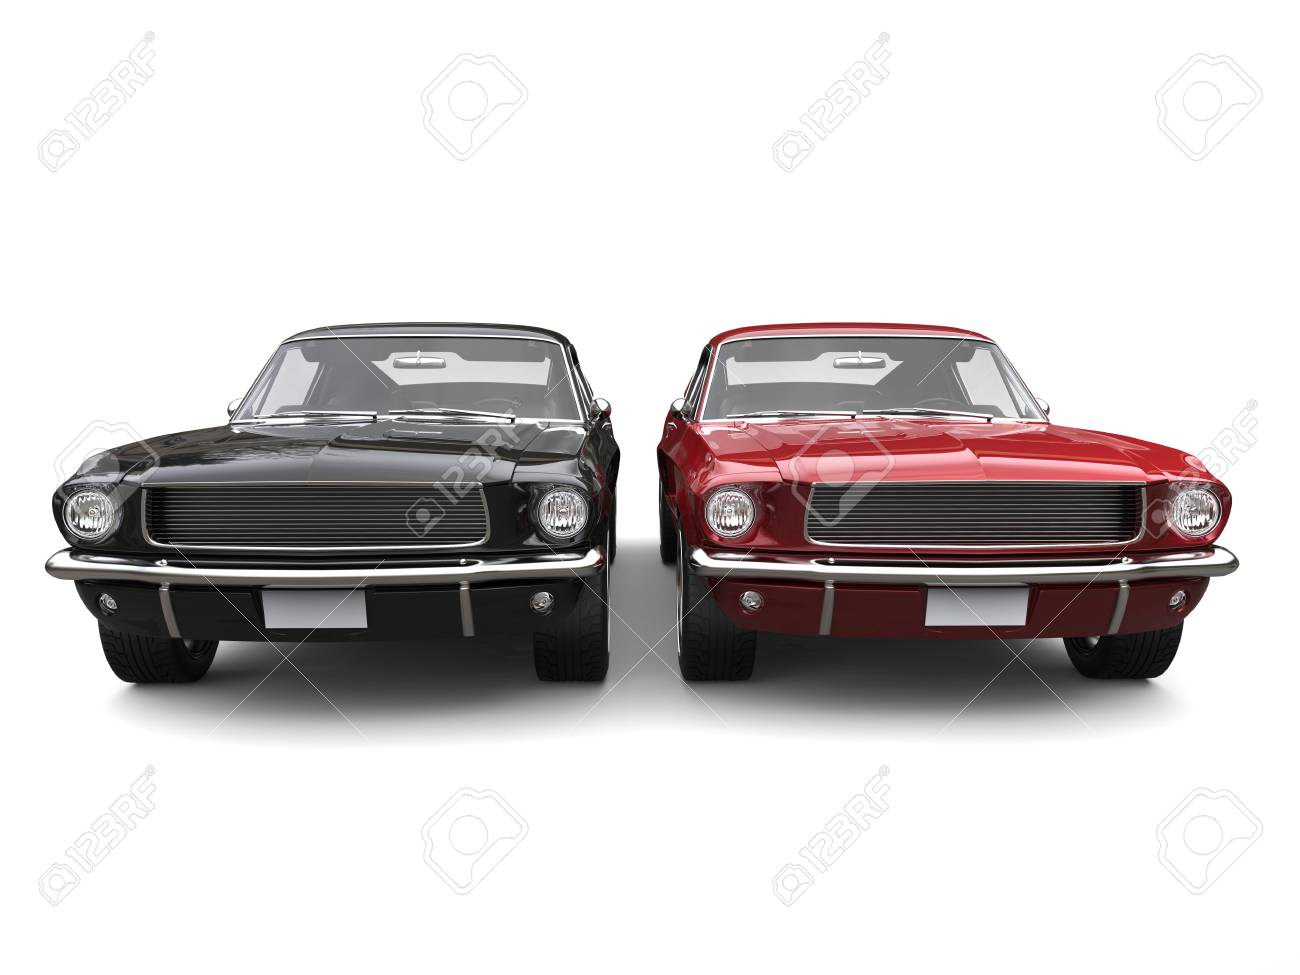 Amazing Vintage American Muscle Cars Red And Black Stock Photo